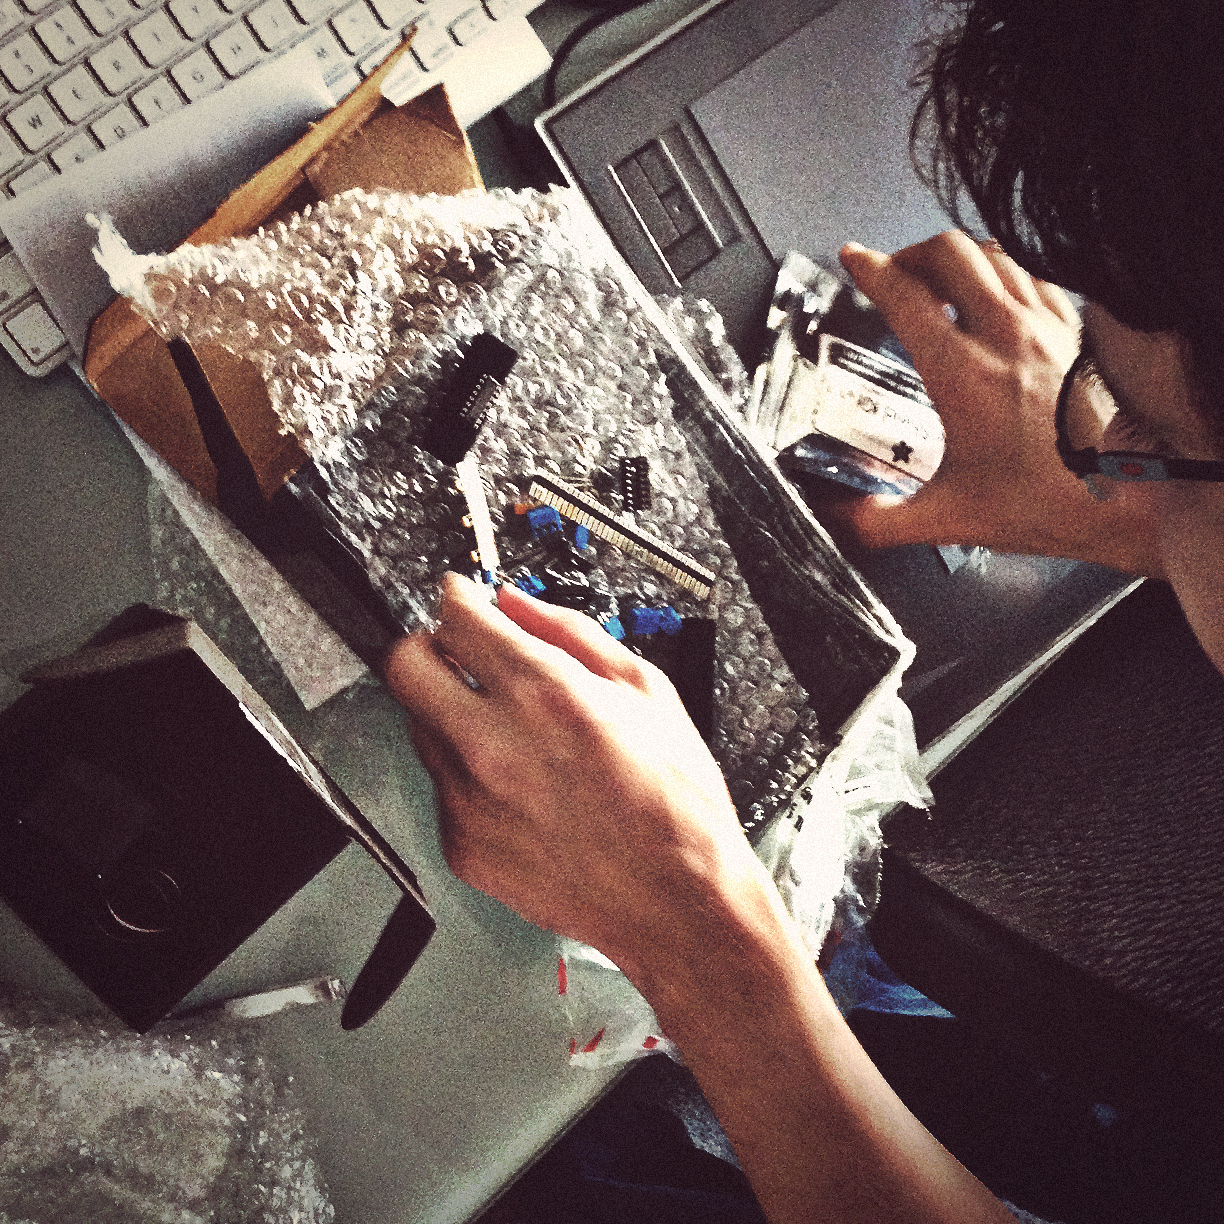 Technology. Lead developer Tyler digs into some Arduino gear for the DIY dolly rig.